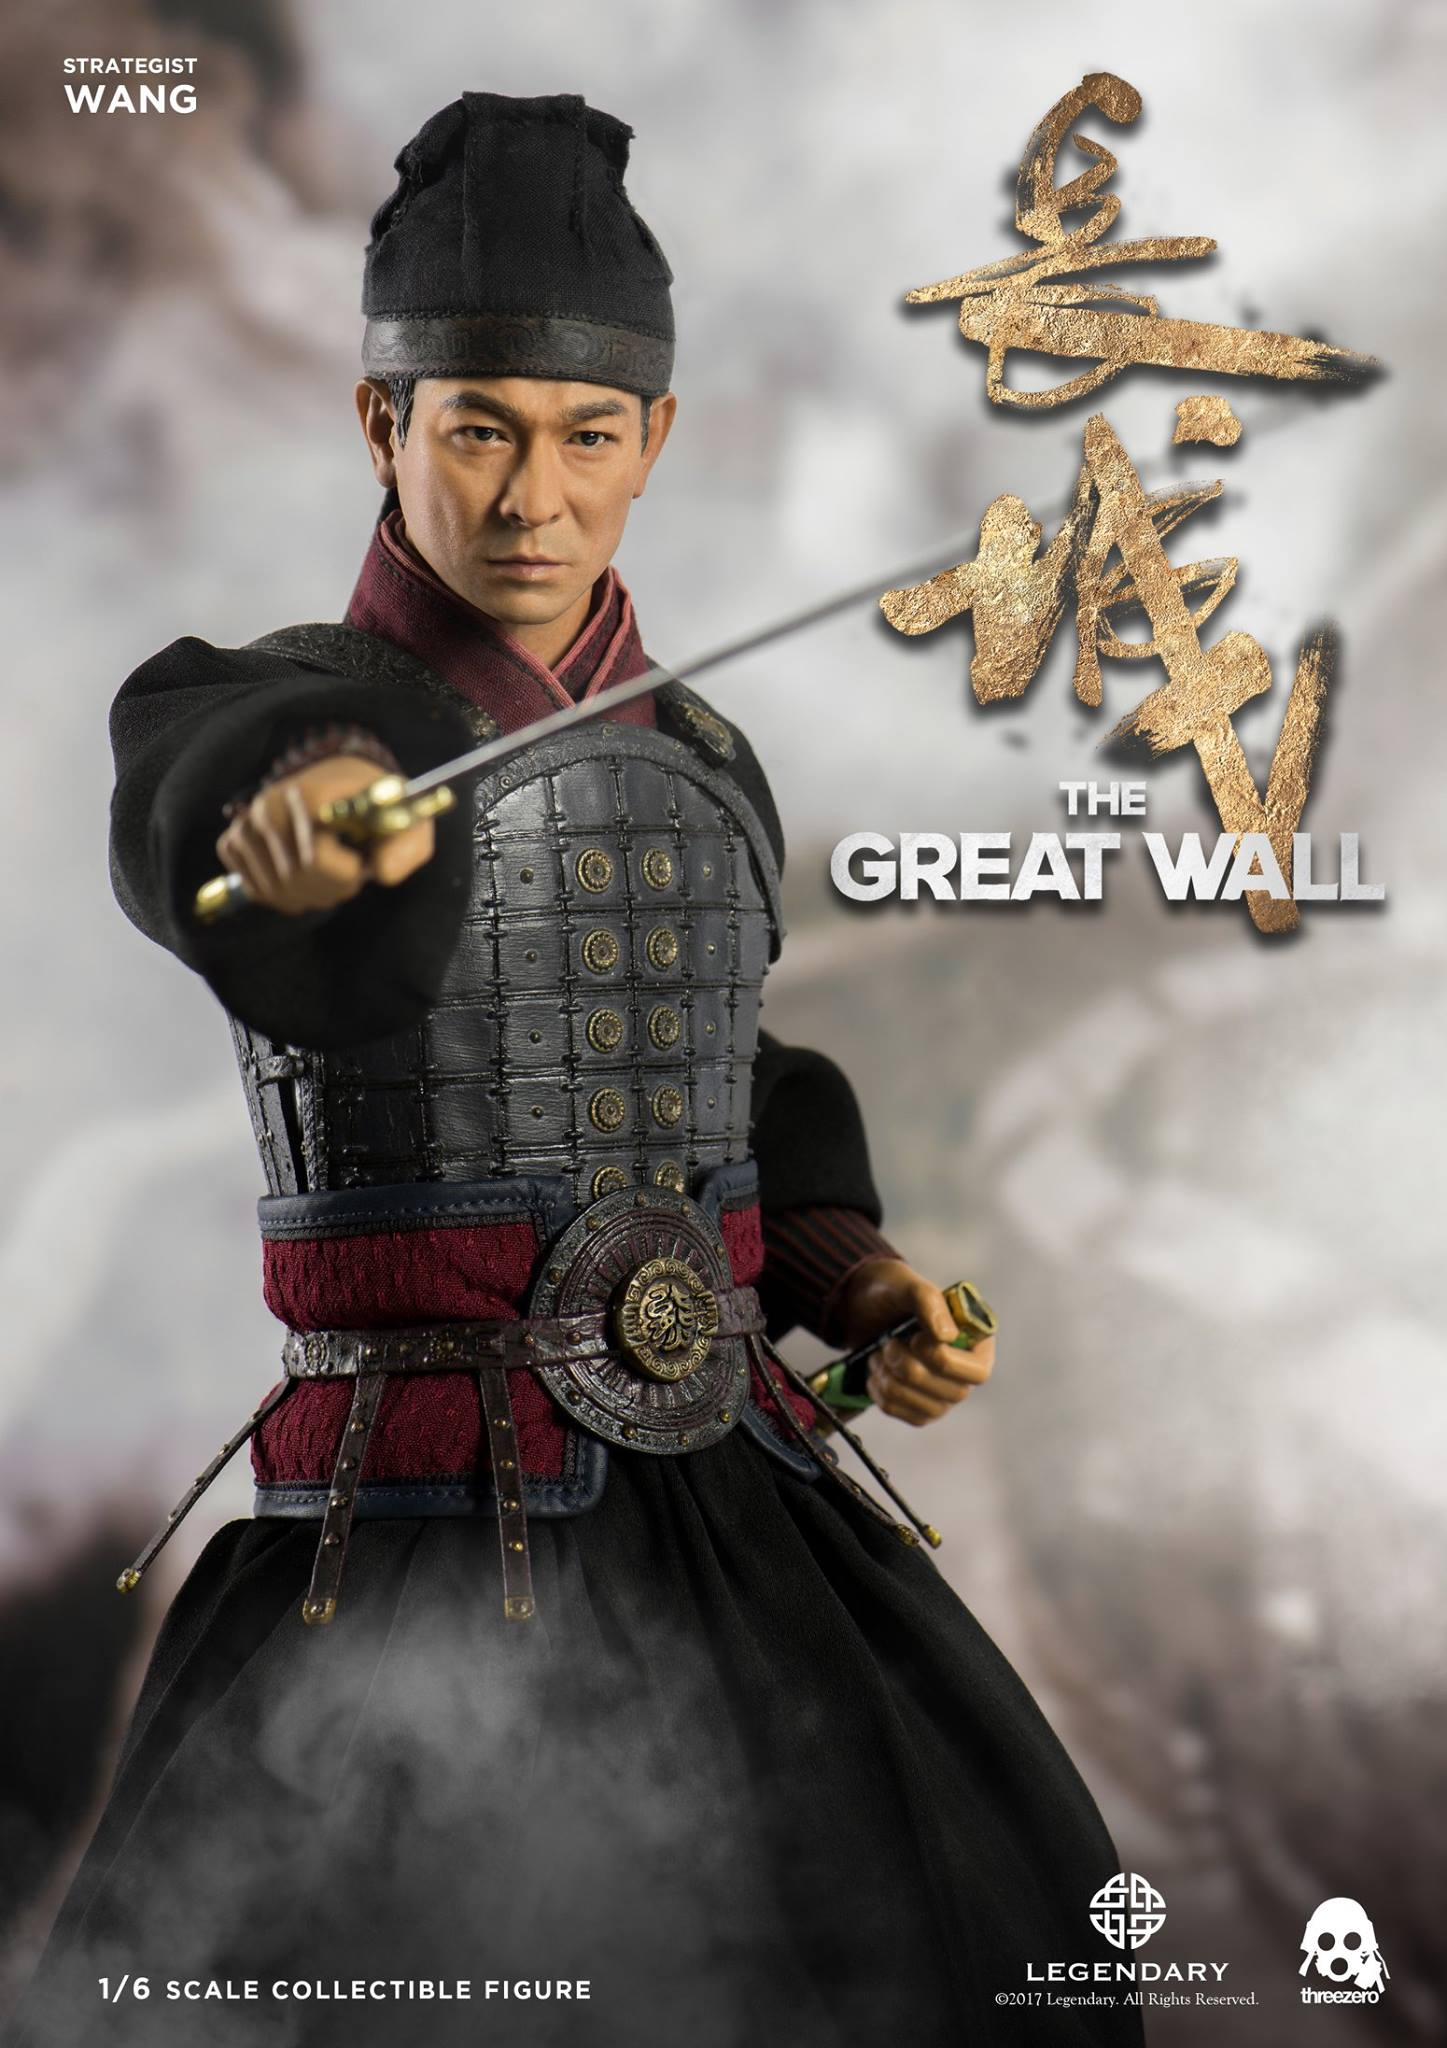 [Pre-Order] The Great Wall - Strategist Wang